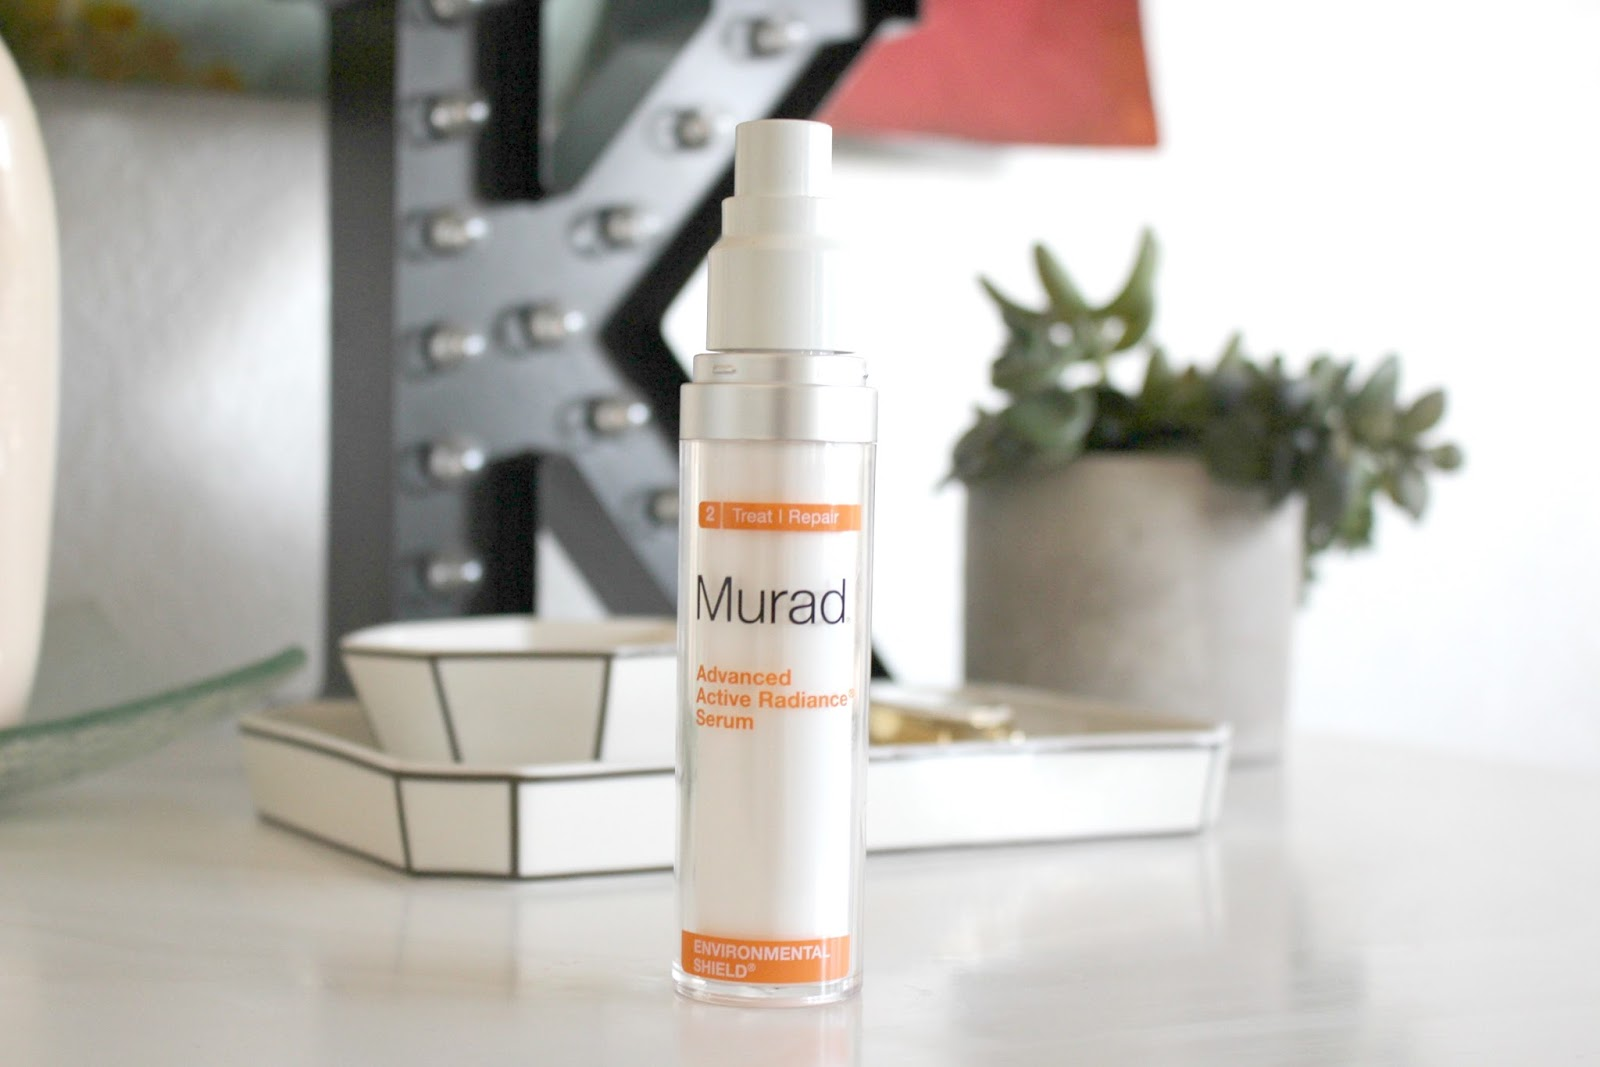 Murad Advanced Active Radiance Serum review